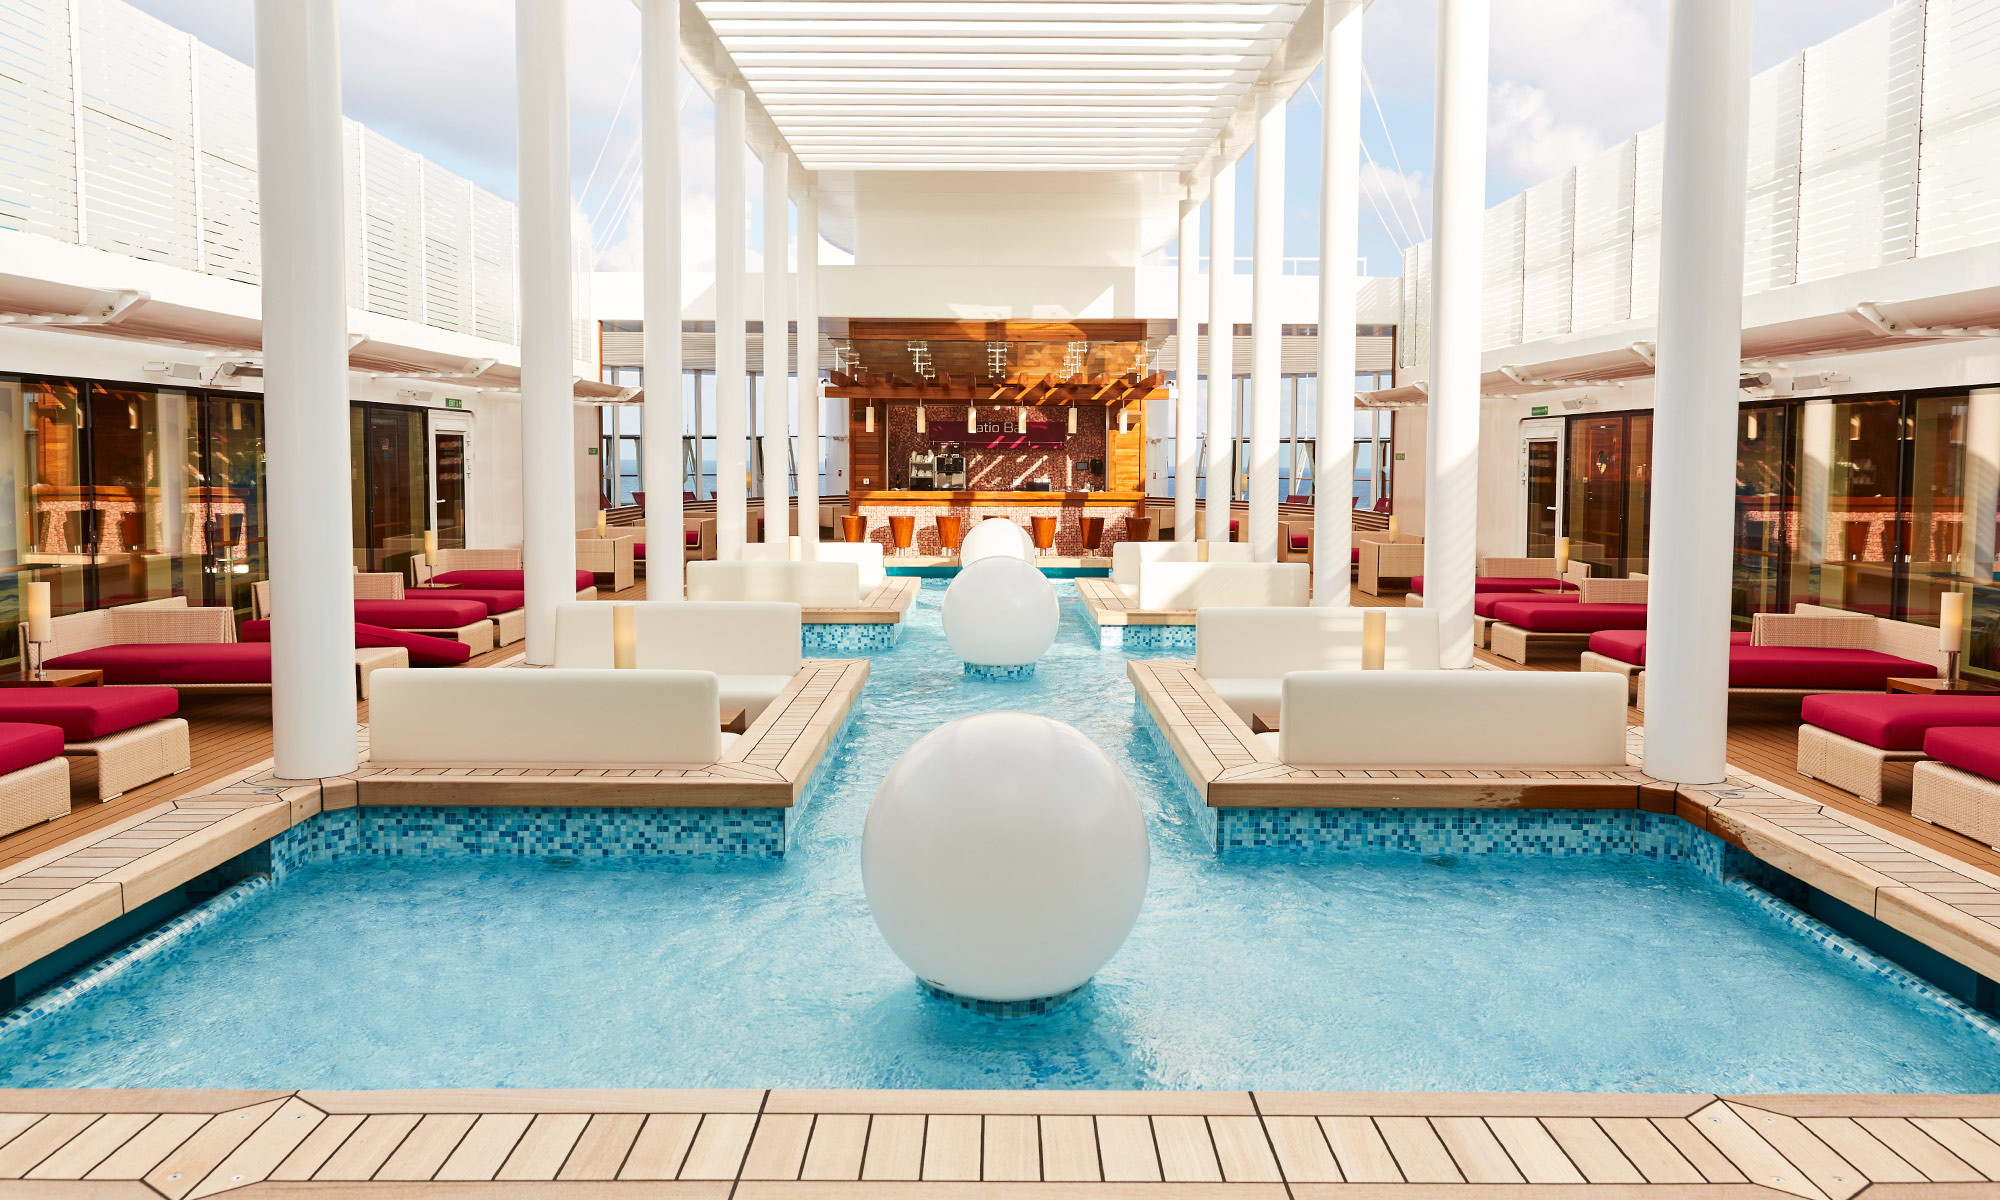 AIDA Patio Deck. Foto: AIDA Cruises